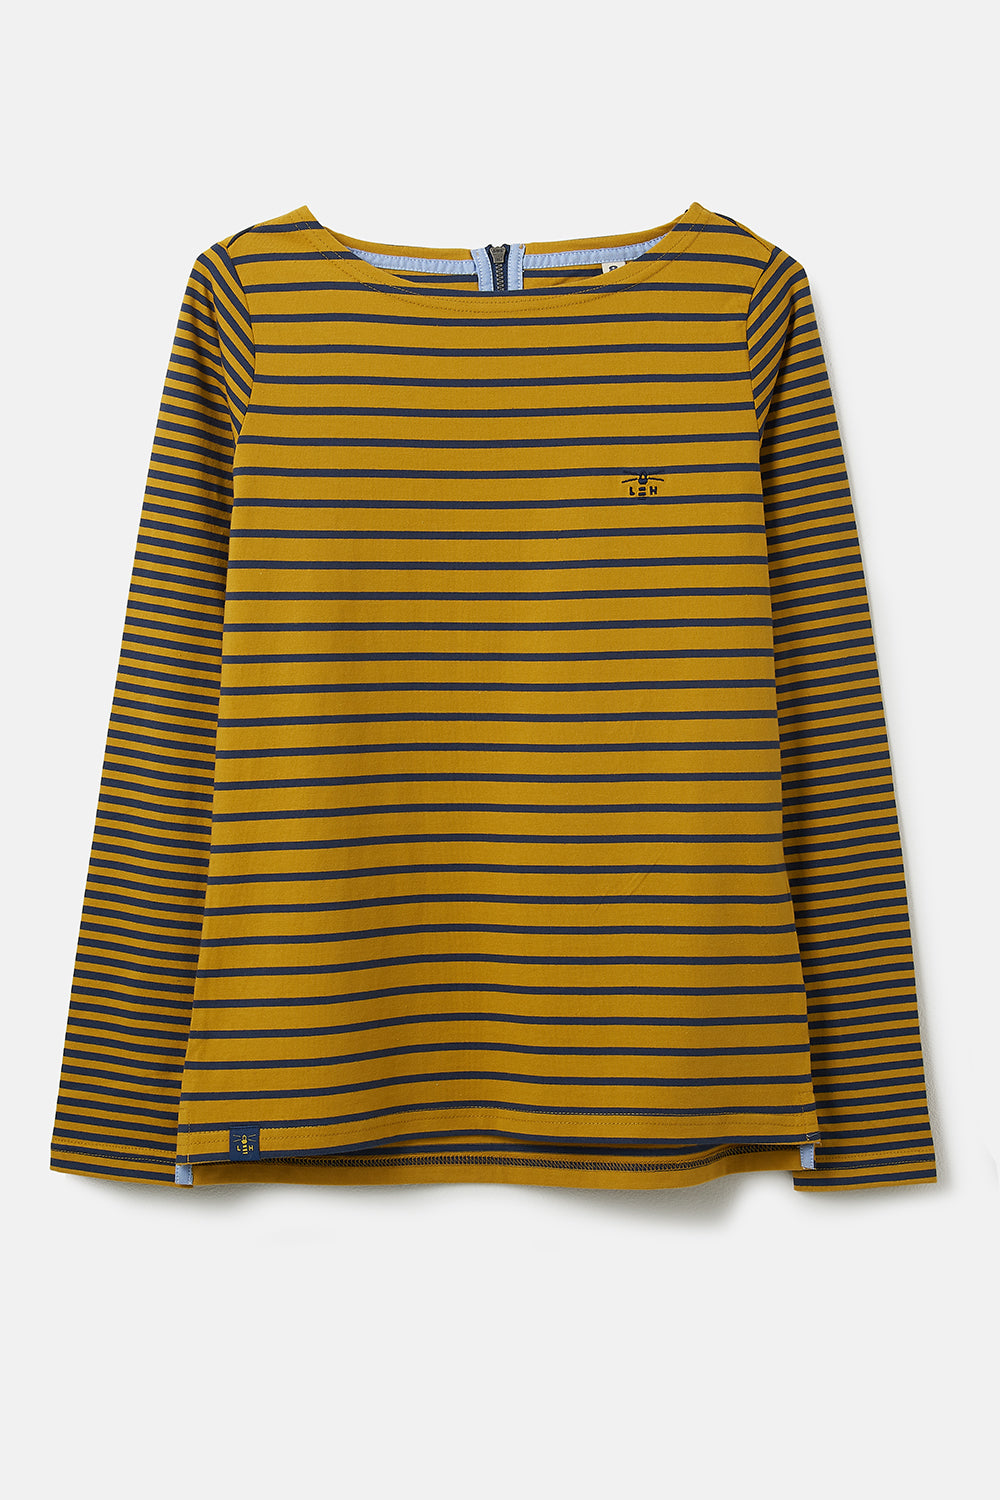 Causeway Breton Top - Sunrise Midnight Stripe